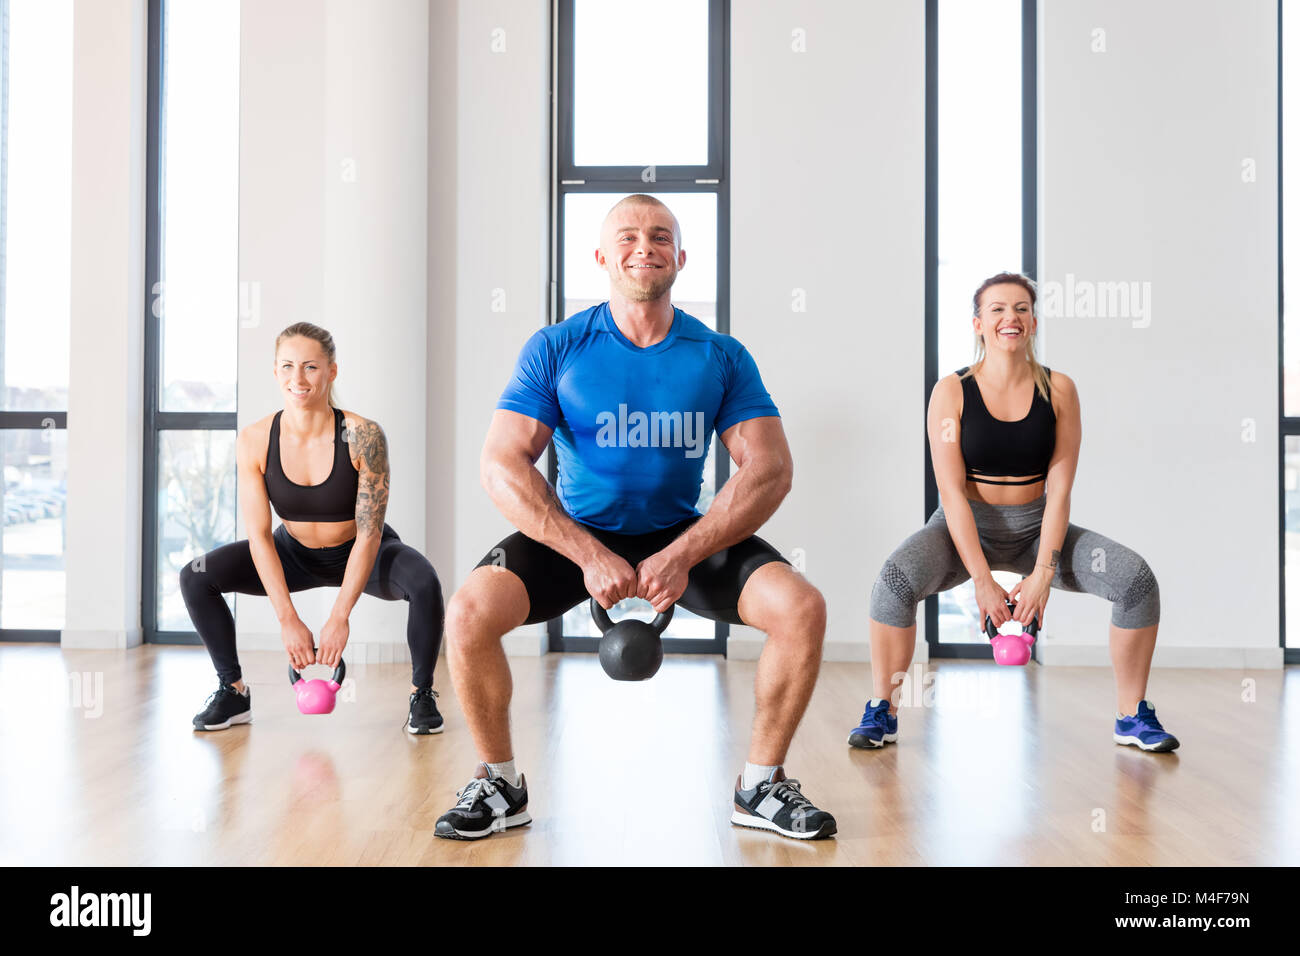 Crossfit group workout with kettlebells. - Stock Image